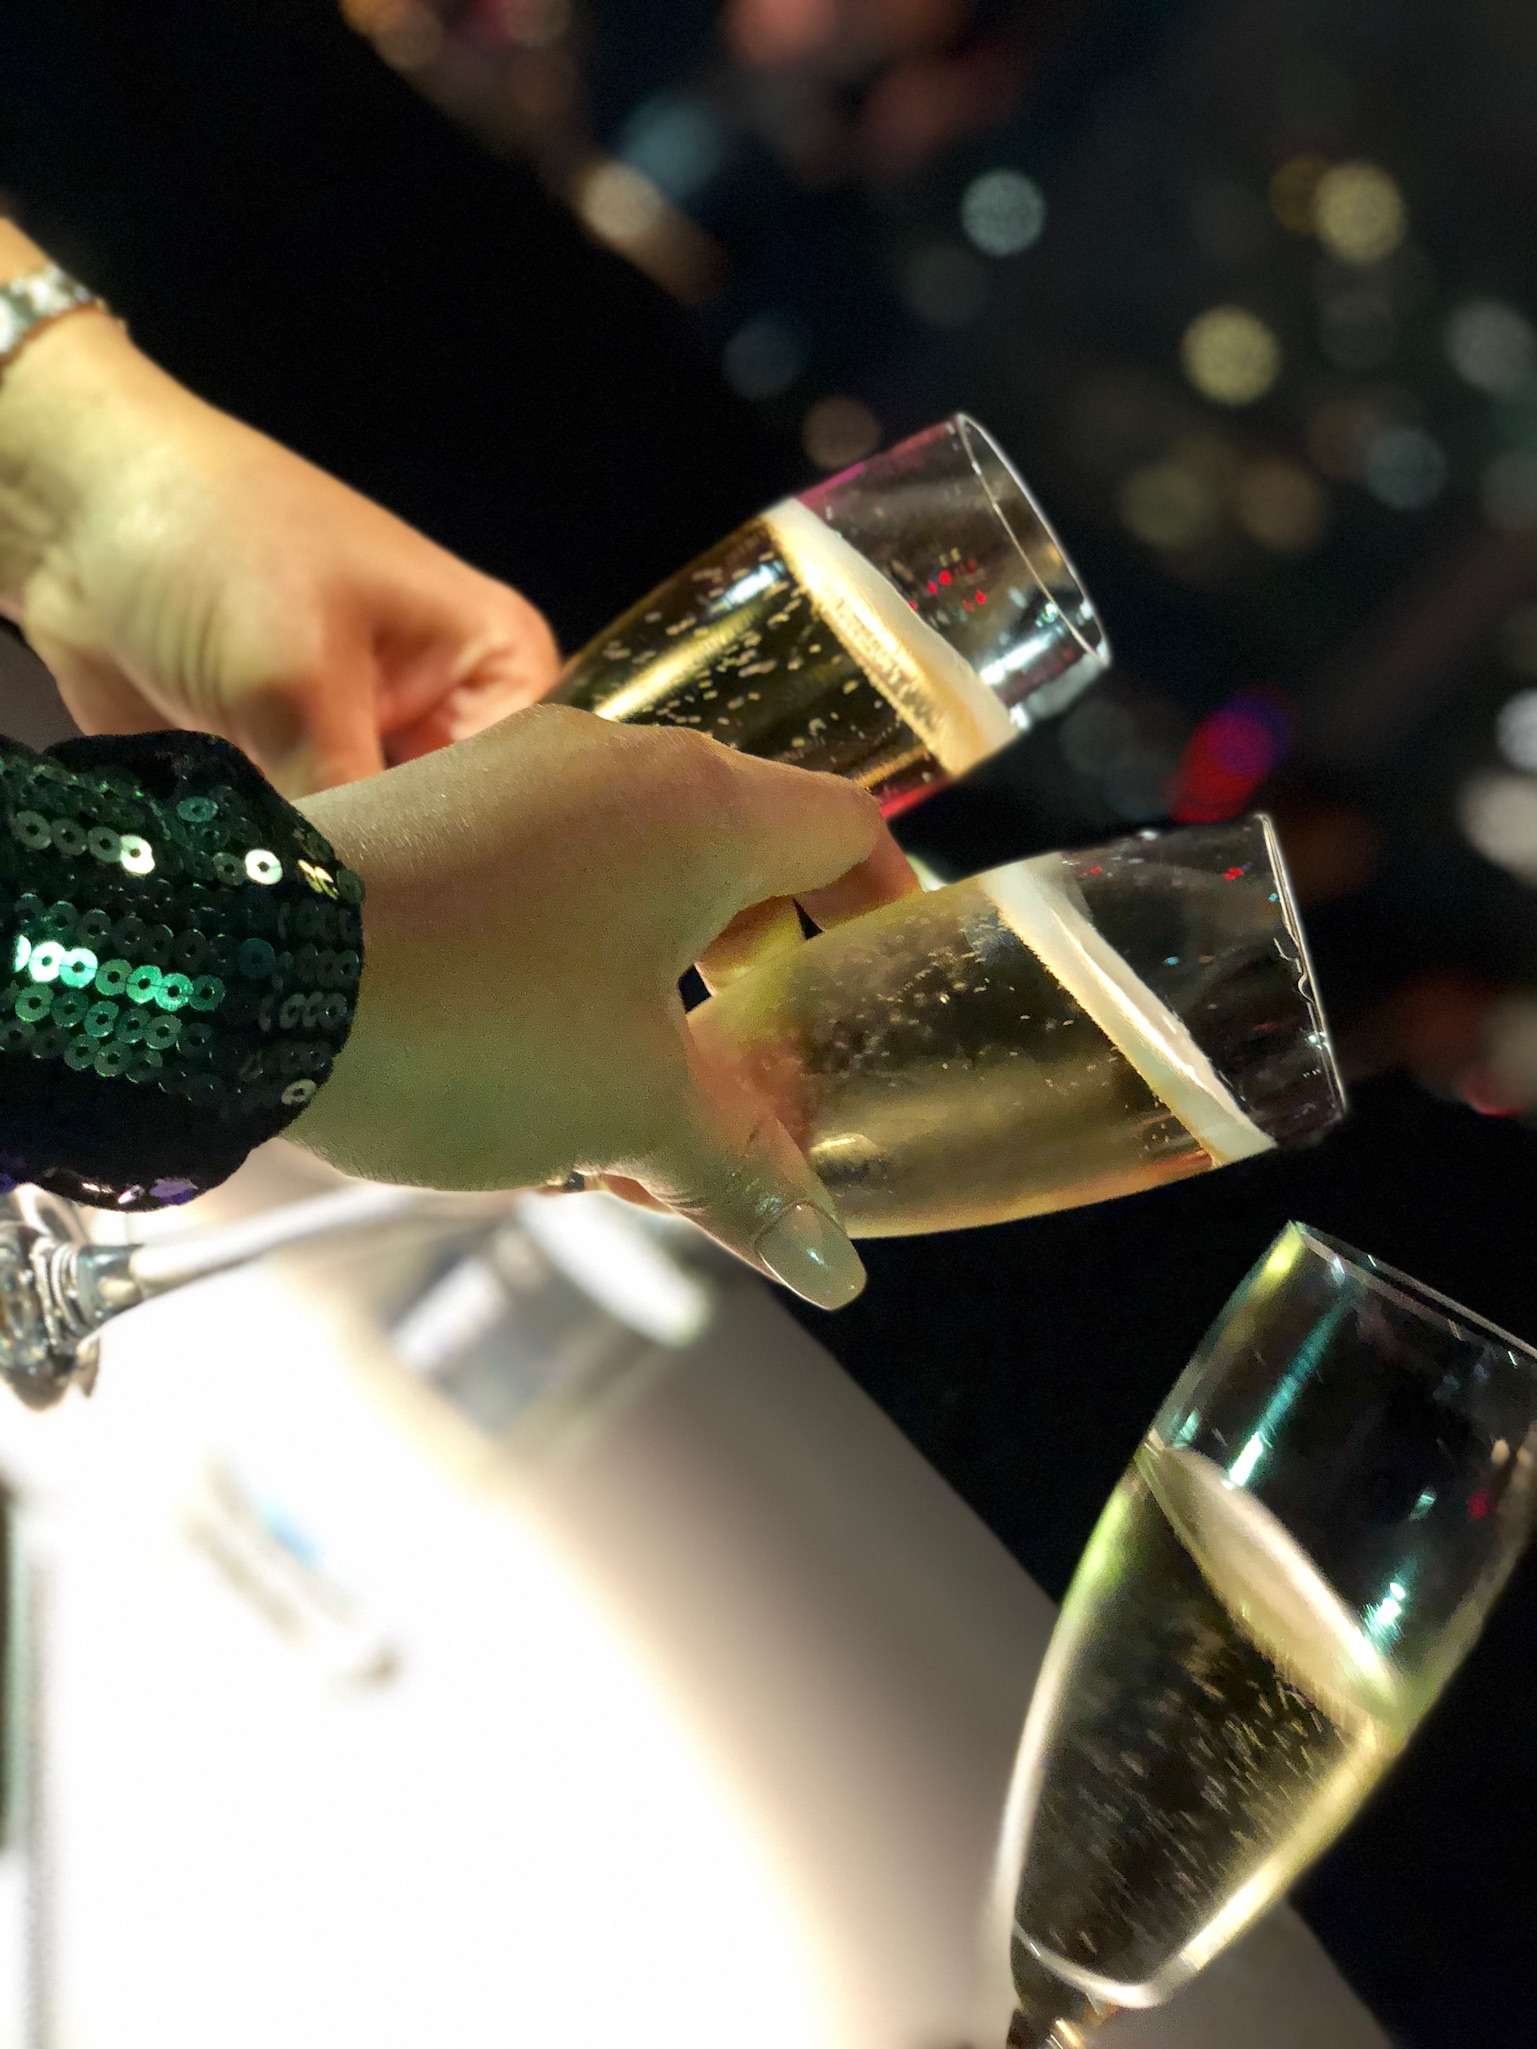 Cheers to the New Year!